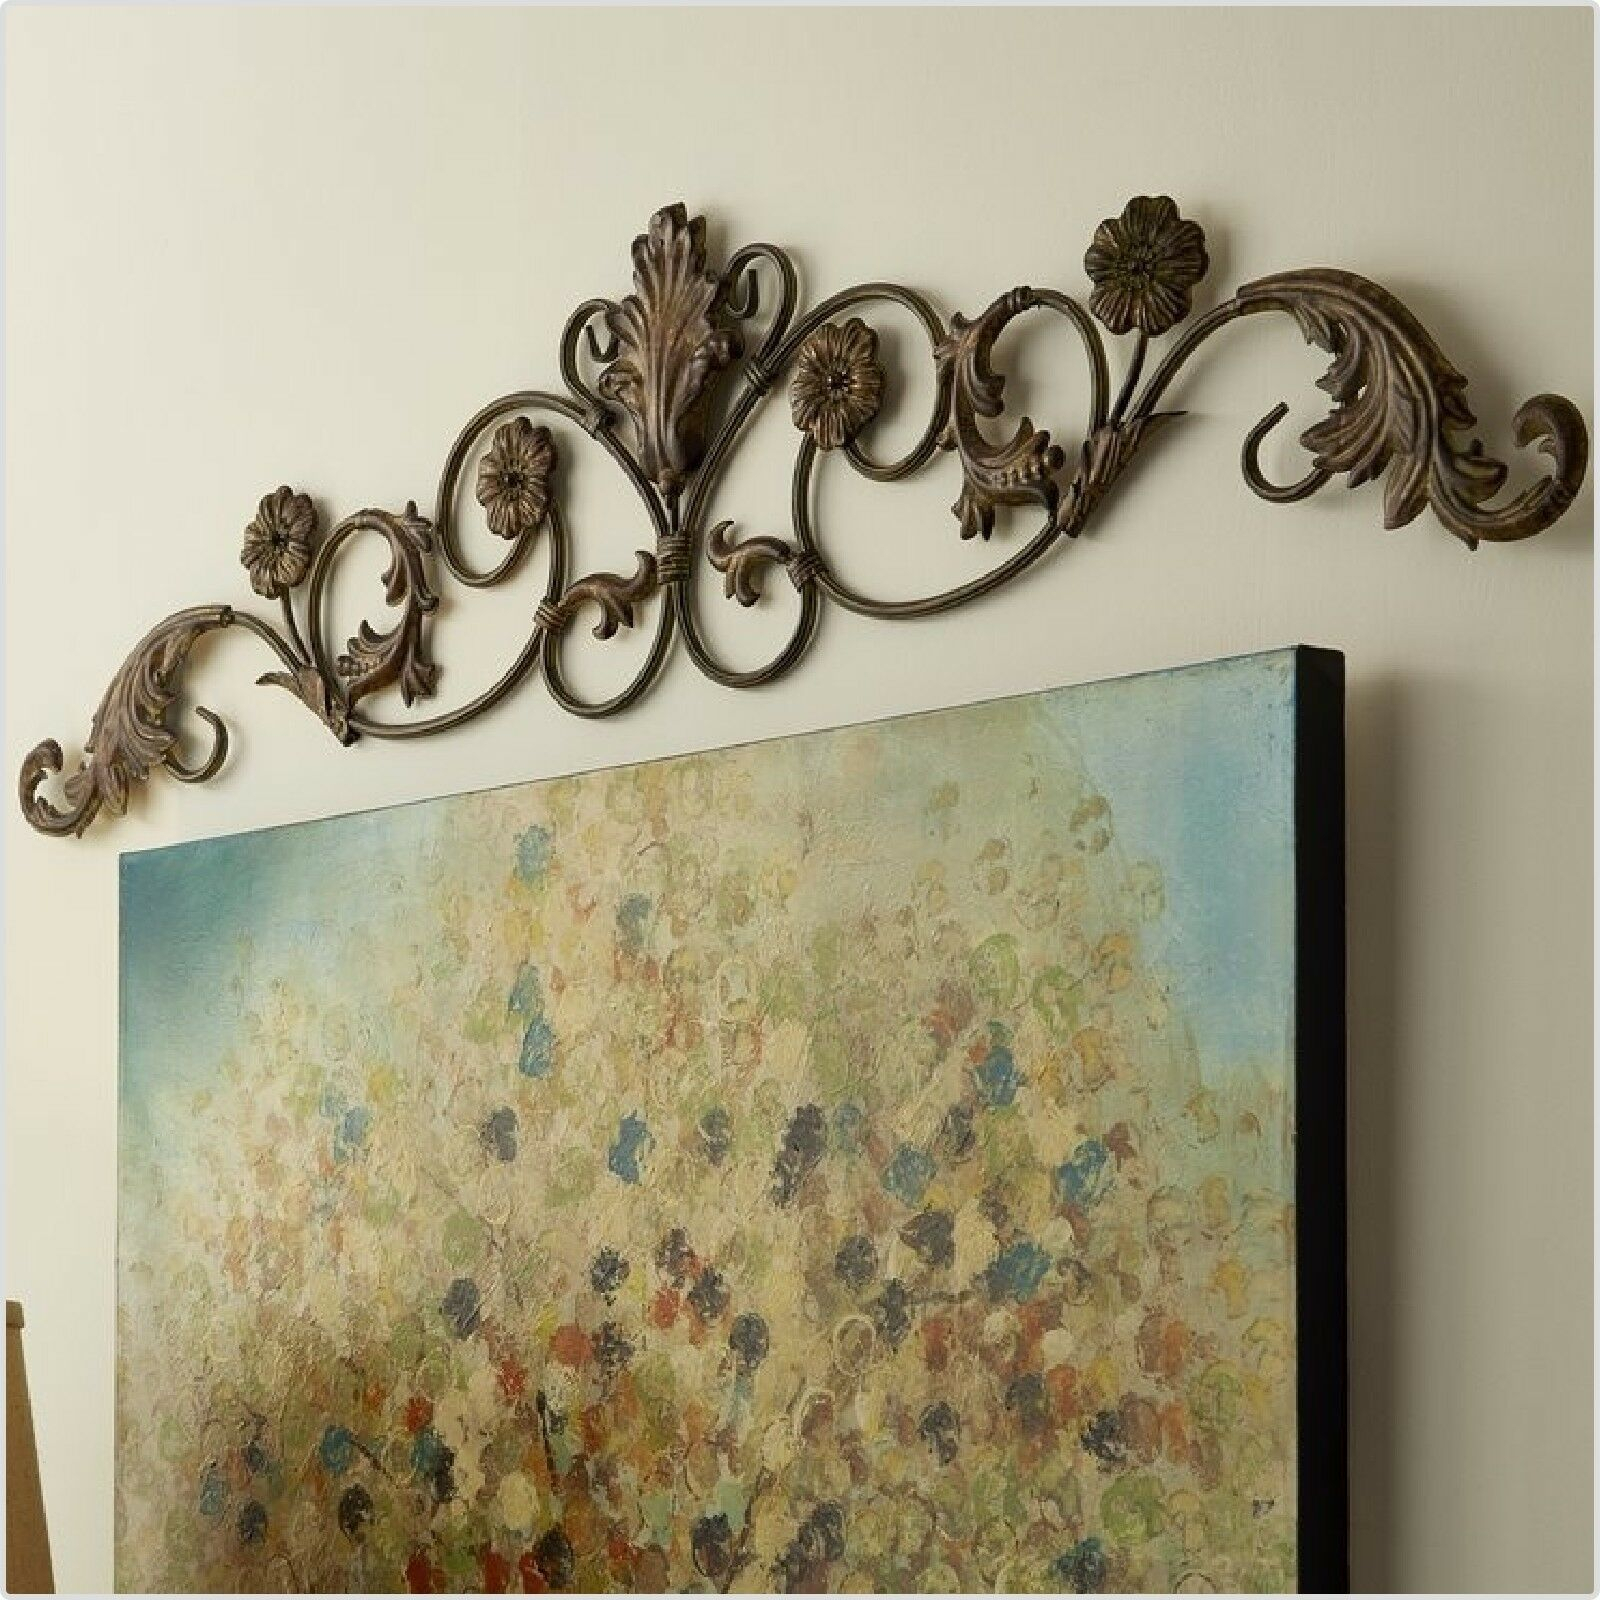 Entryway Wrought Iron Wall Art Decor Door Topper Rustic Tuscan Metal Sculpture Intended For Scroll Panel Wall Decor (Gallery 20 of 30)